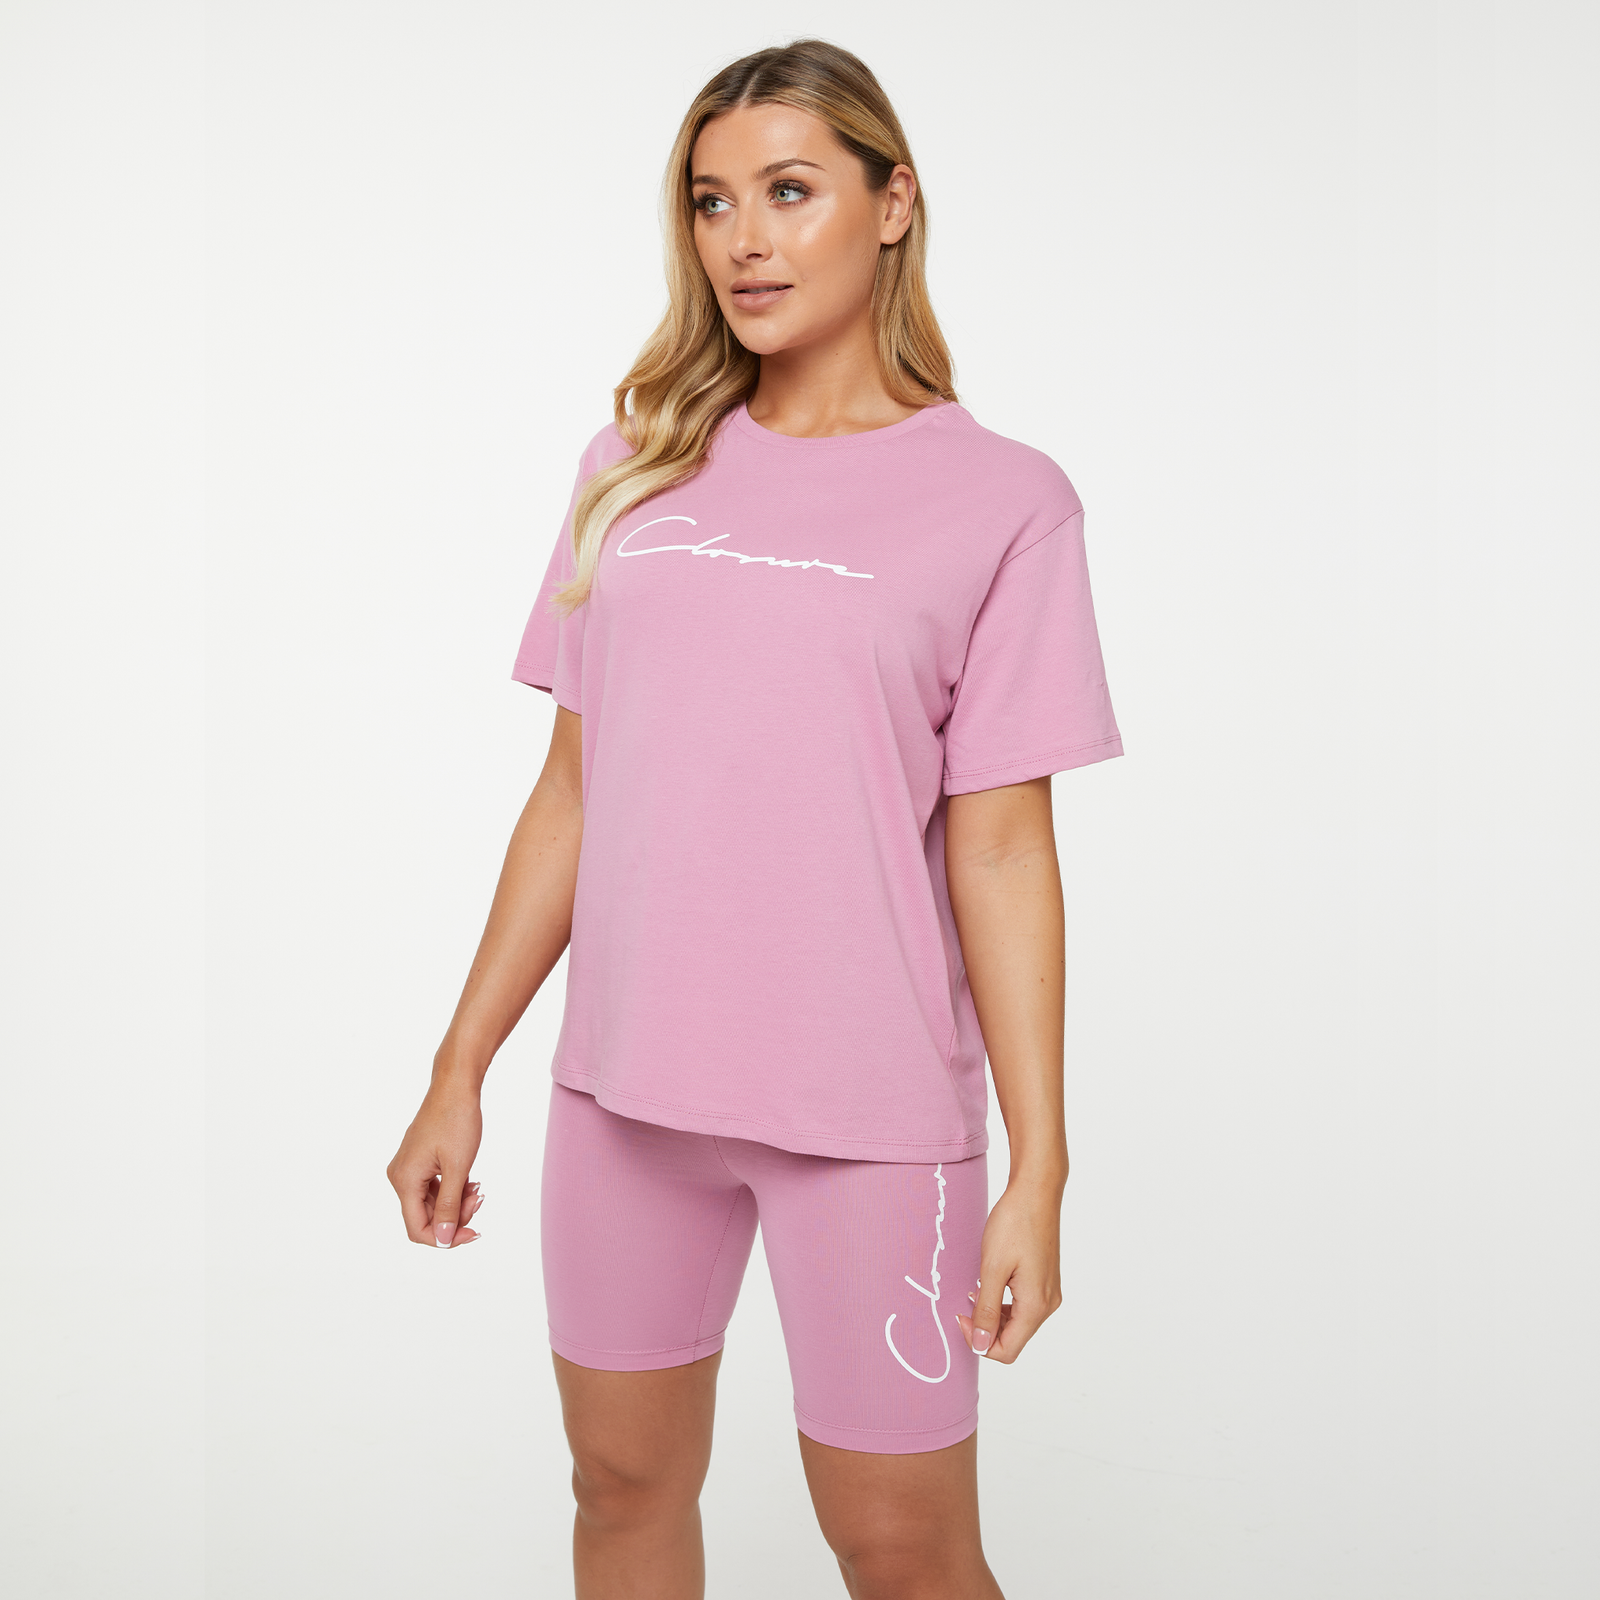 Womens Closure London Tee and Short Training Set in Berry